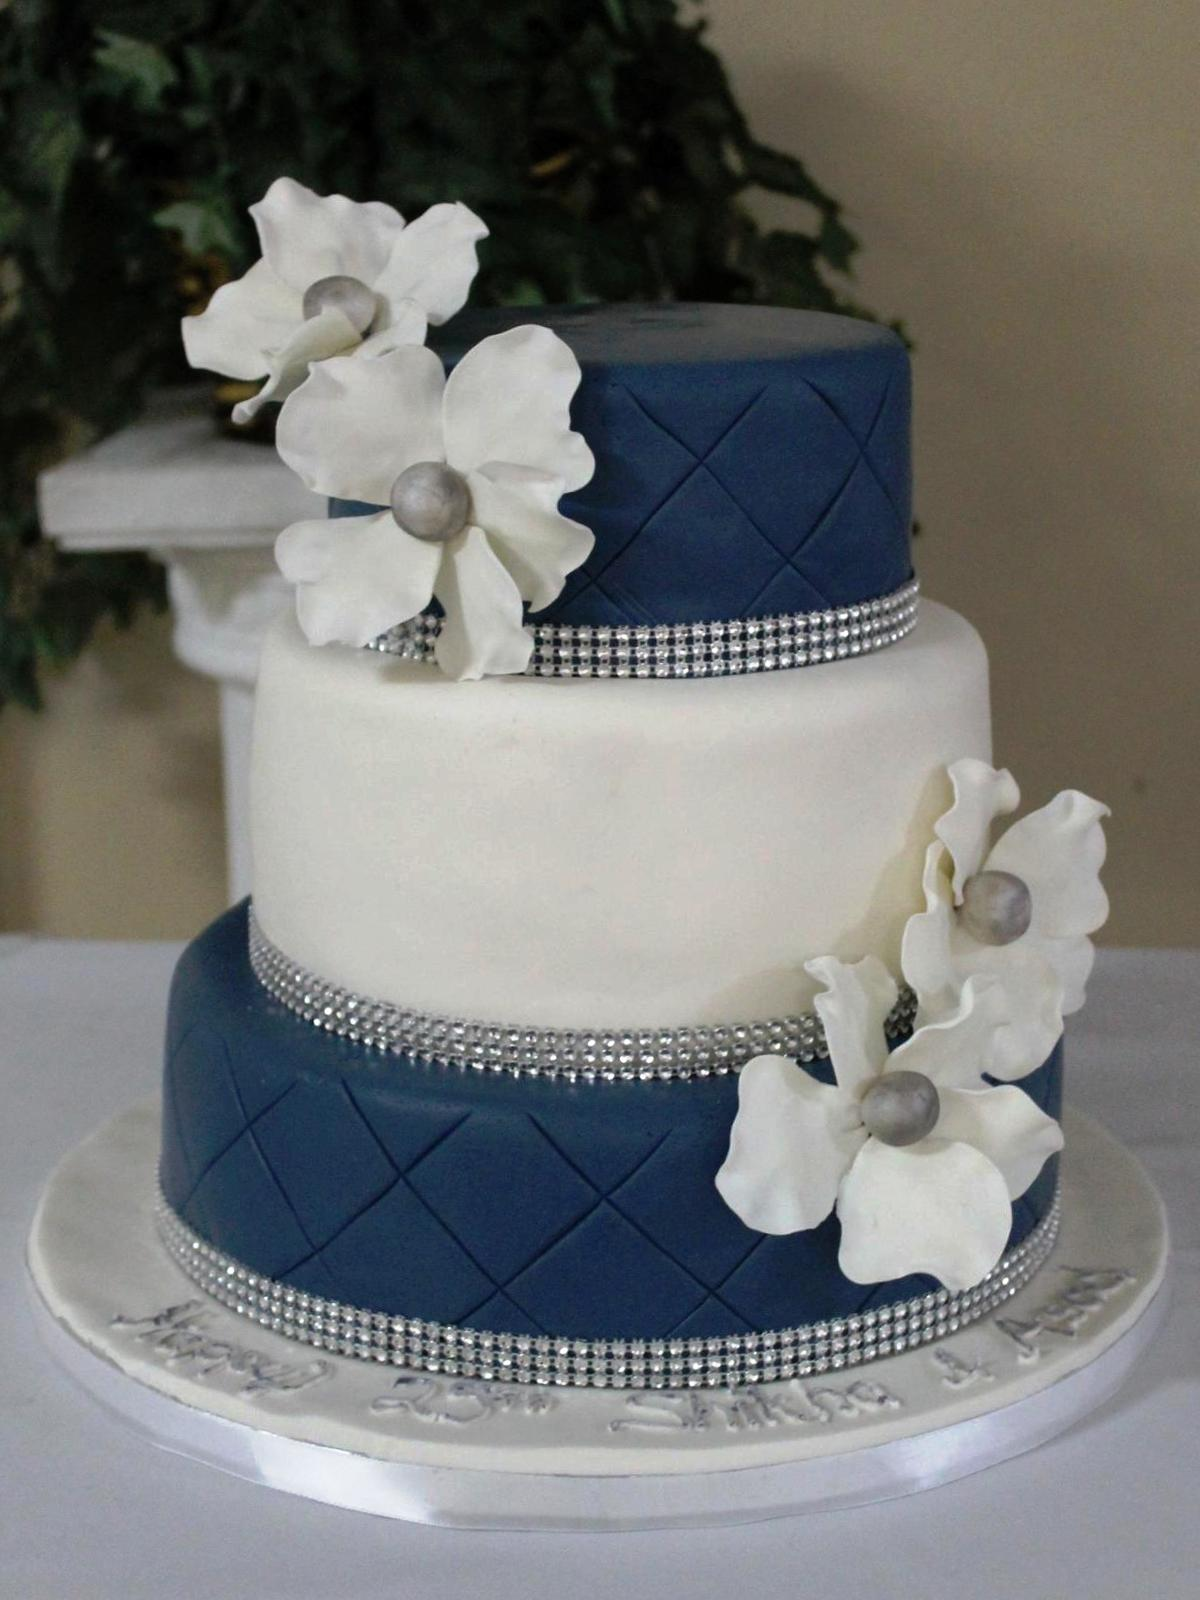 10 Light Blue Quilted Wedding Cakes Photo Royal Blue And Silver